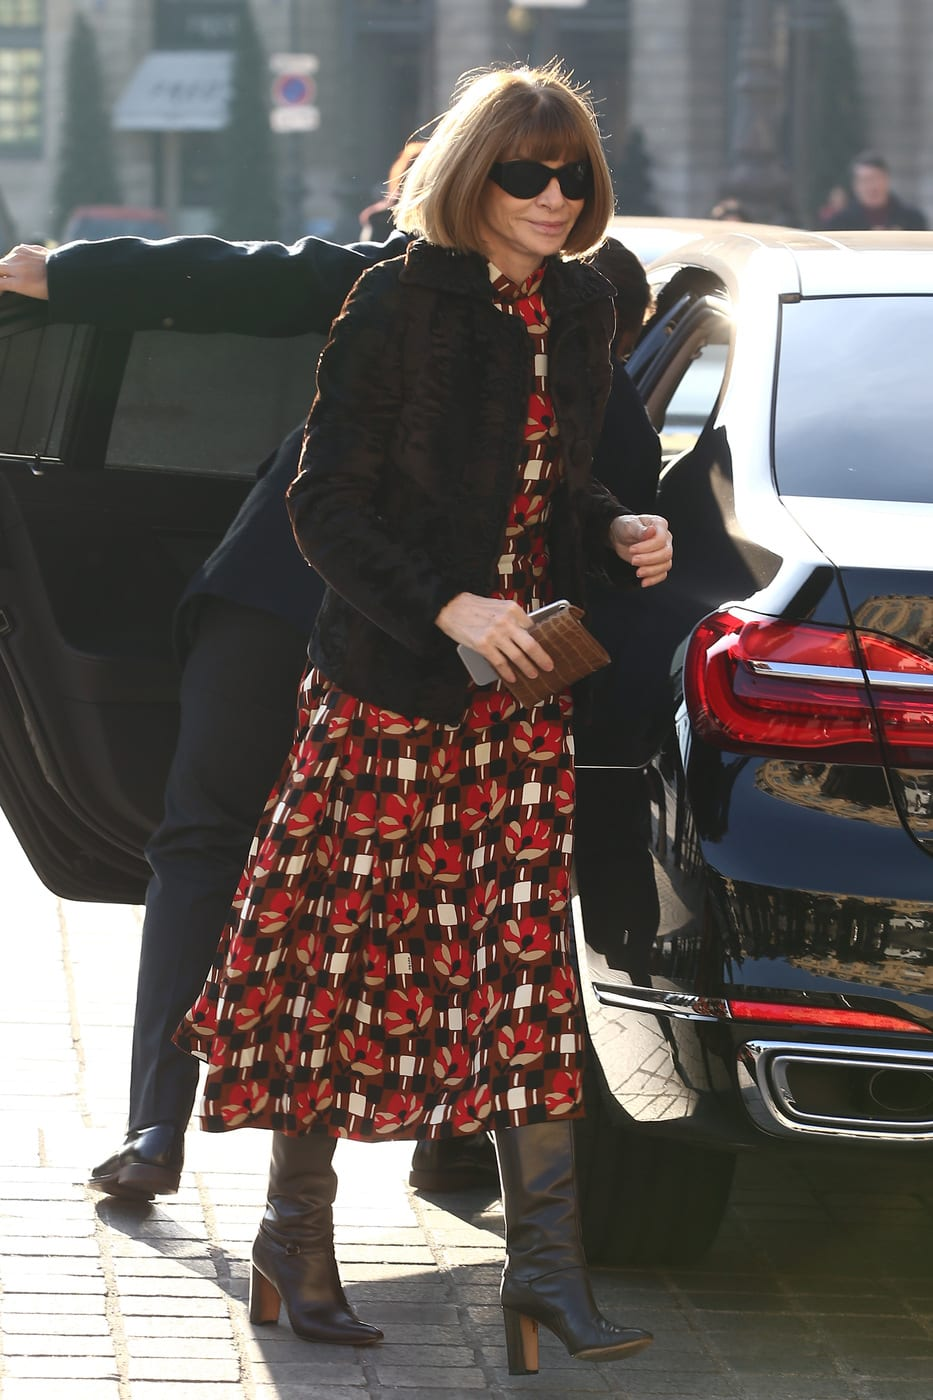 Anna Wintour wearing a red patterned dress, black boots, and a puffy coat